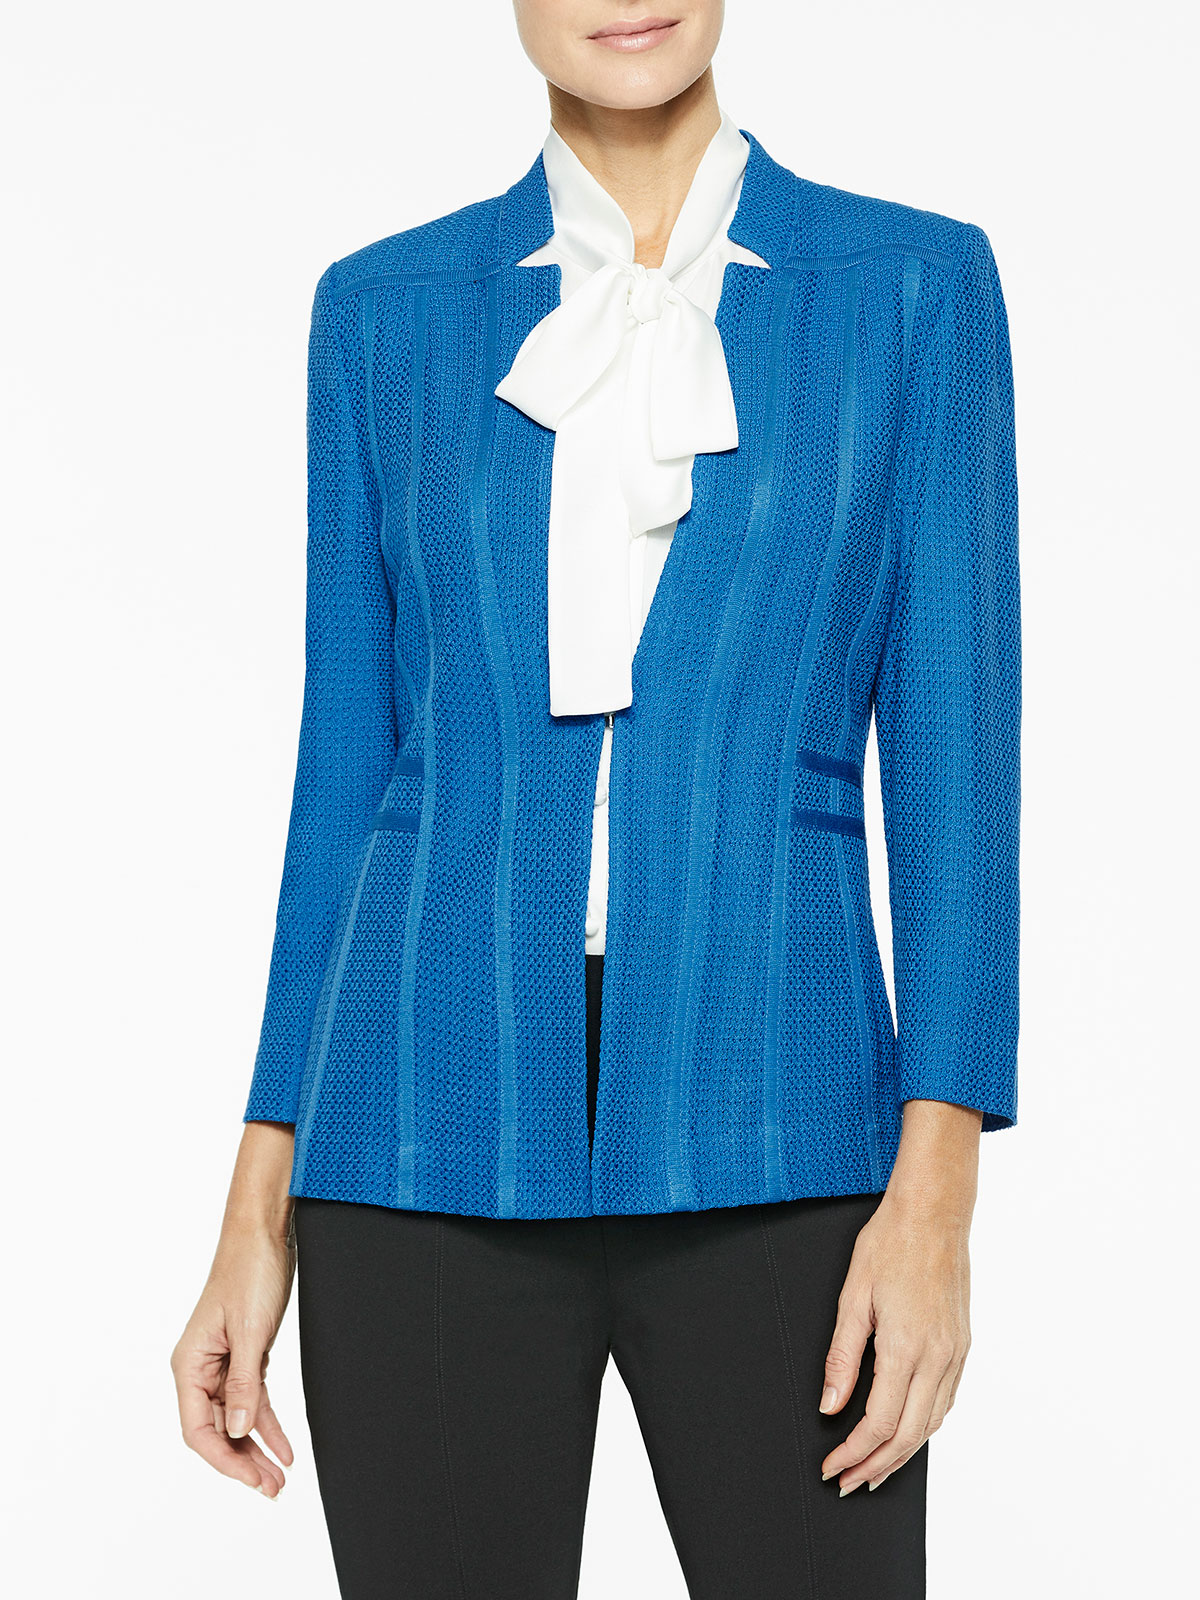 Plus Size Notched Collar Textured Knit Blazer Color Harbor Blue